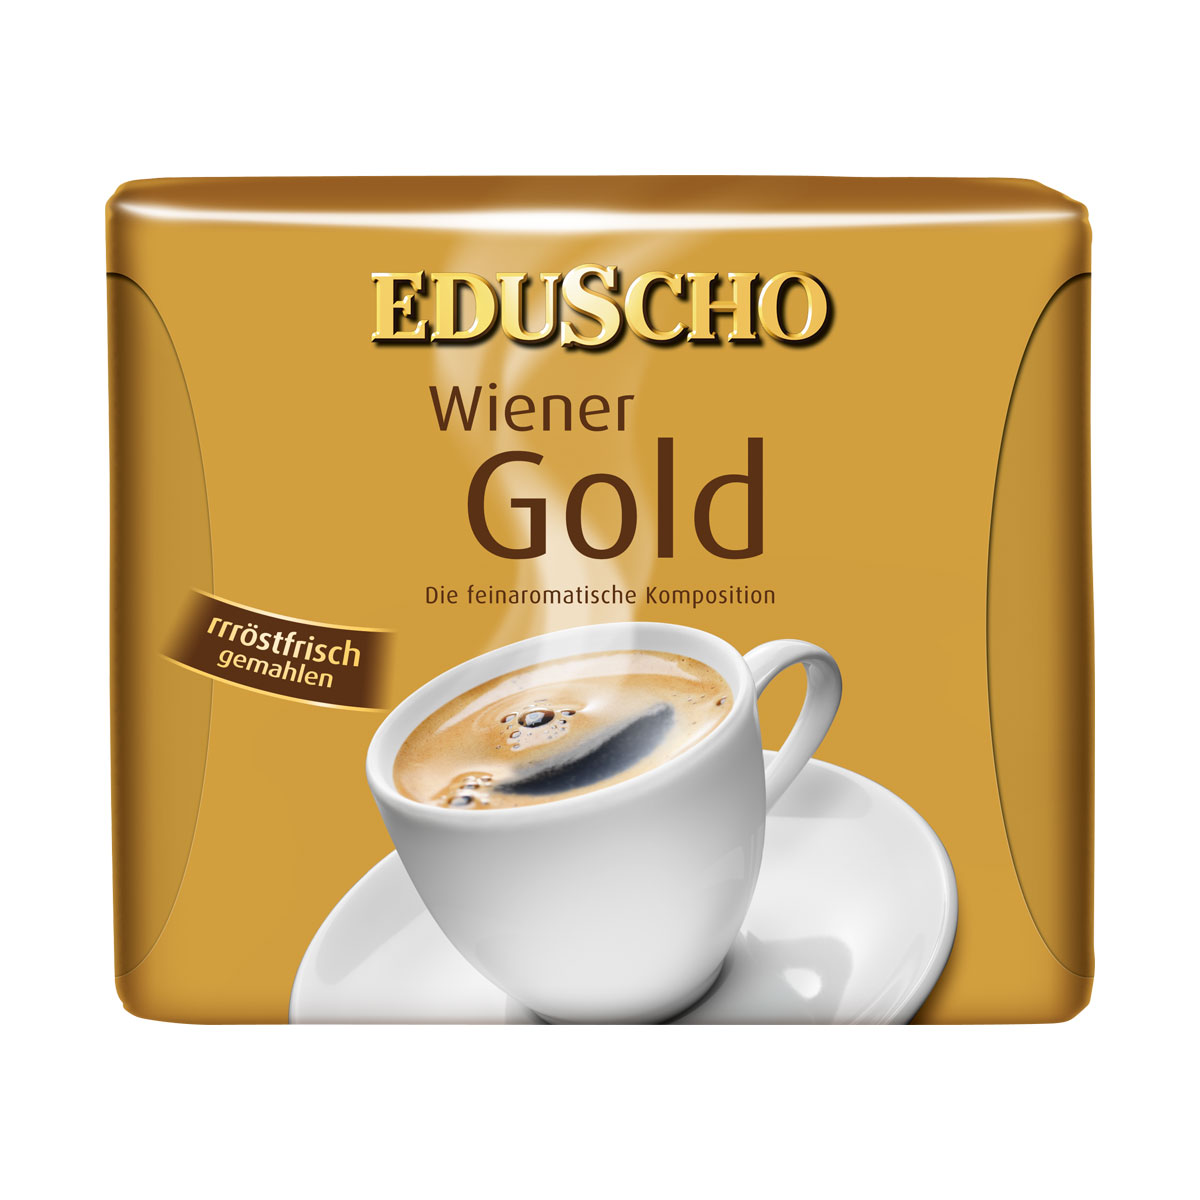 eduscho kaffee wiener gold im unimarkt online shop bestellen. Black Bedroom Furniture Sets. Home Design Ideas